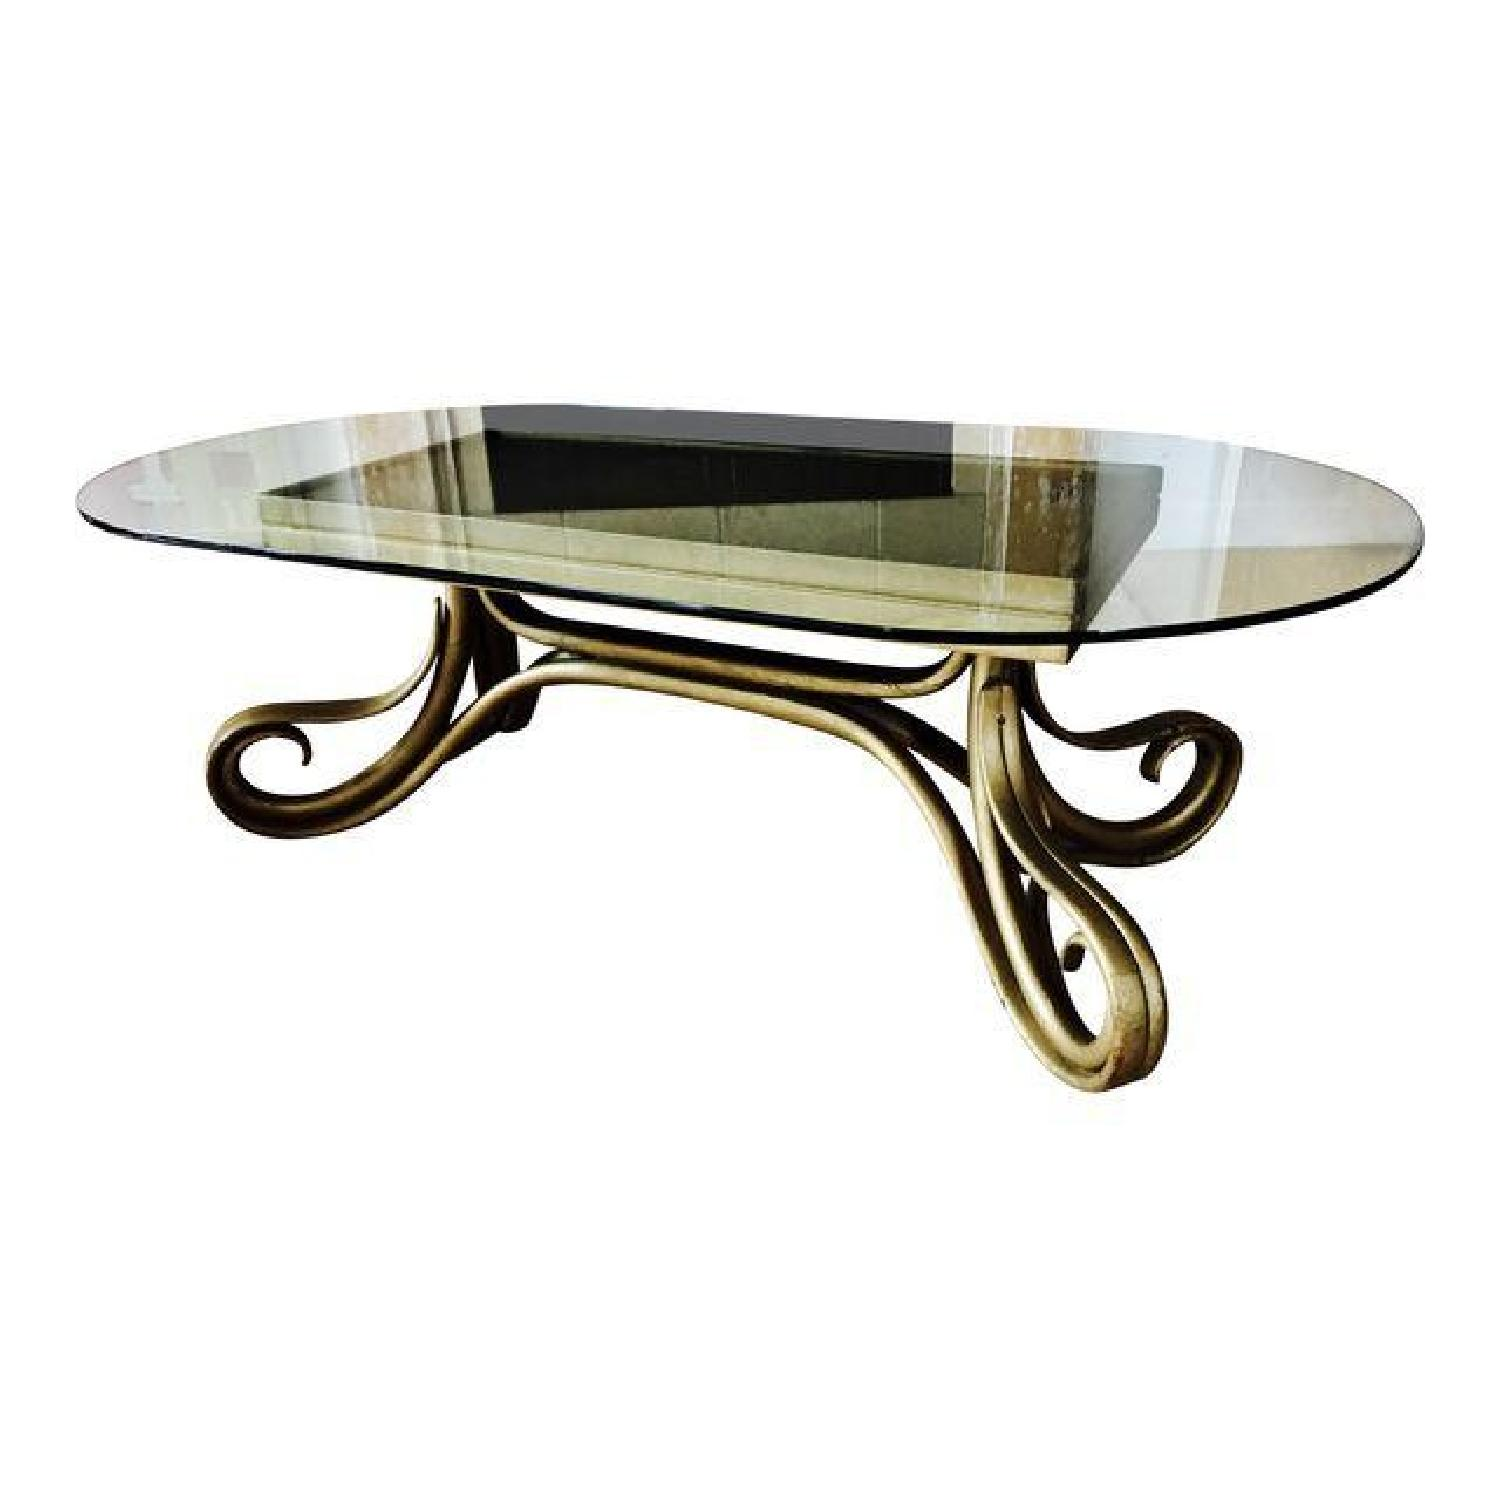 Vintage Thonet Bentwood Glass Top Coffee Table - image-0